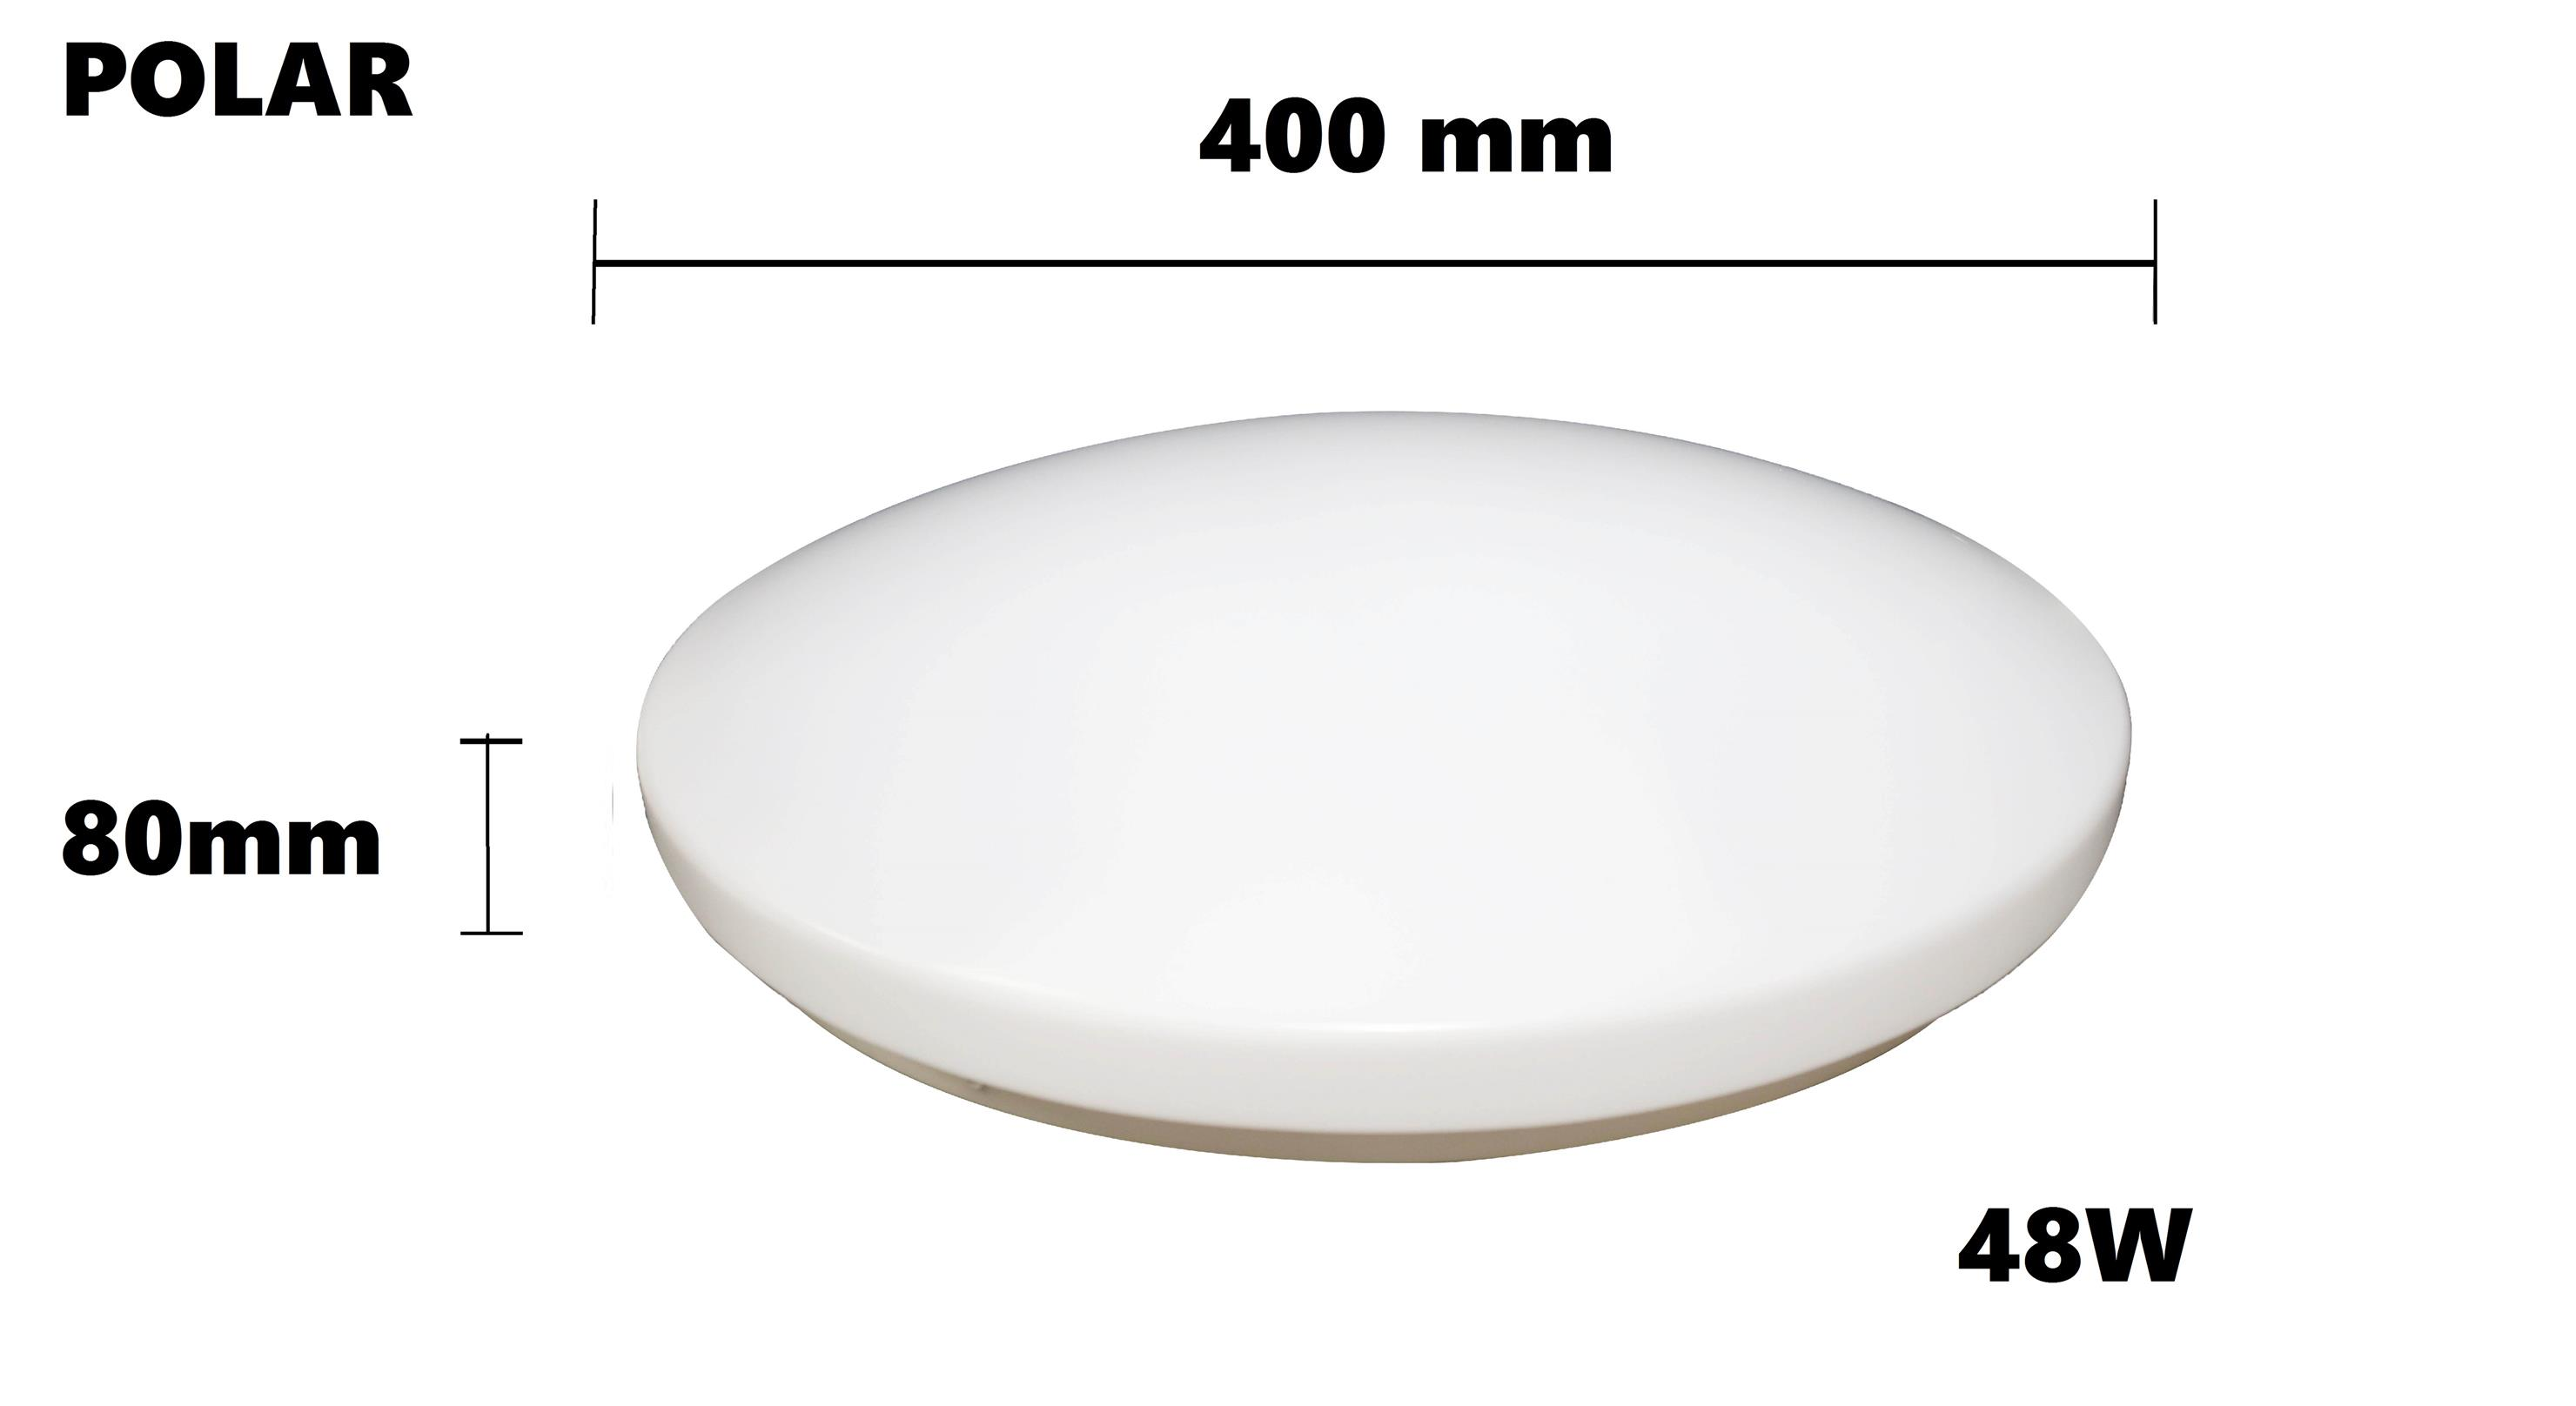 48W POLAR LED Ceiling Light (Plain) Daylight